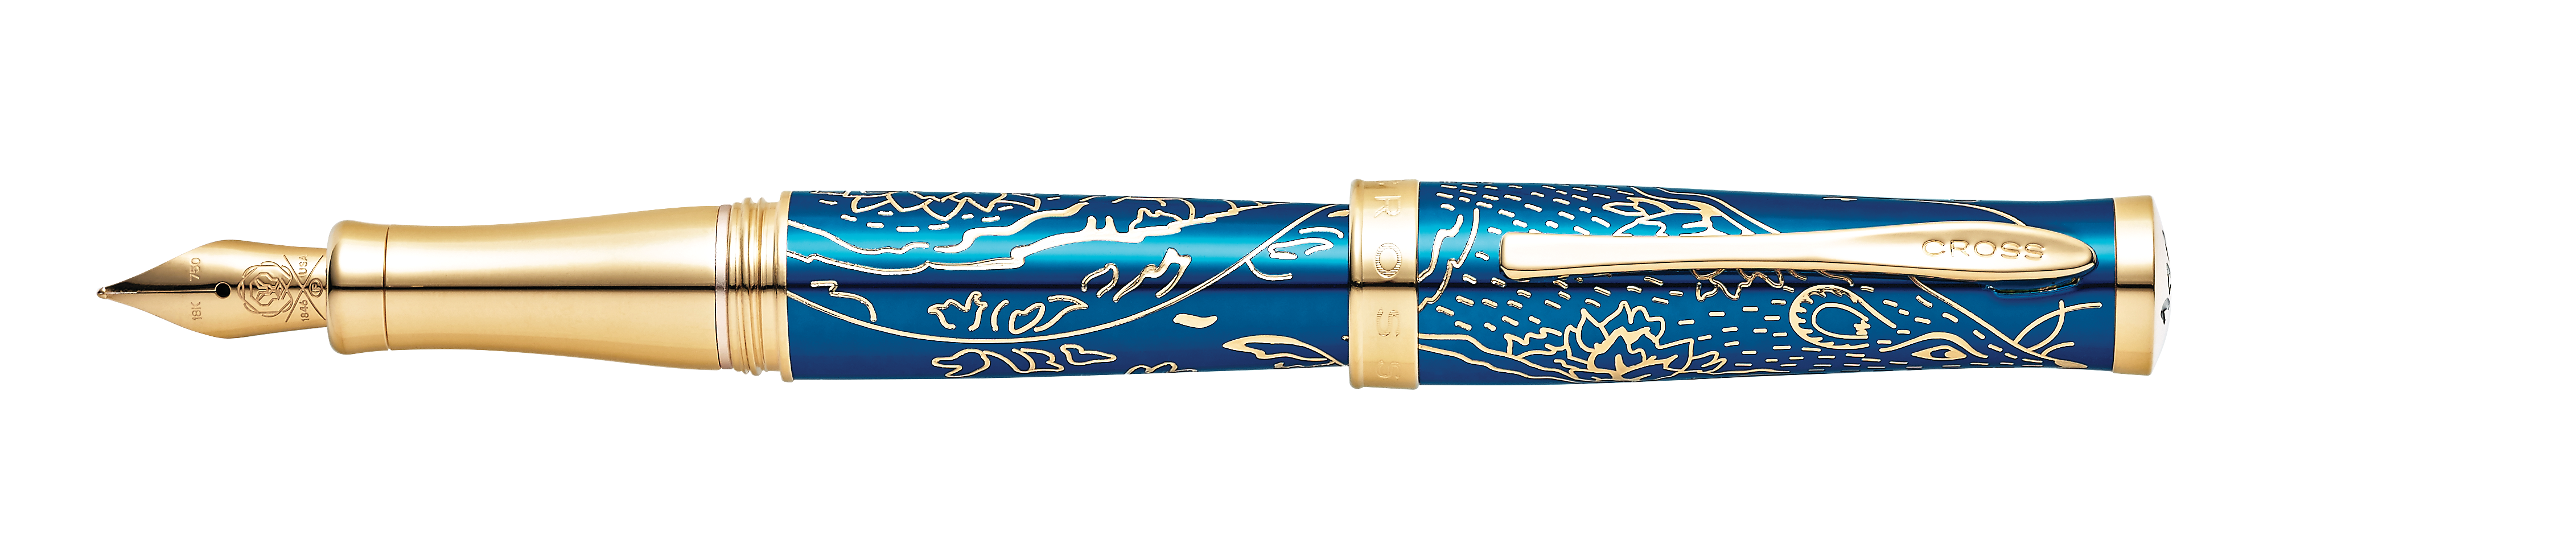 Sauvage 2020 Year of the Rat Special-Edition Fountain Pen